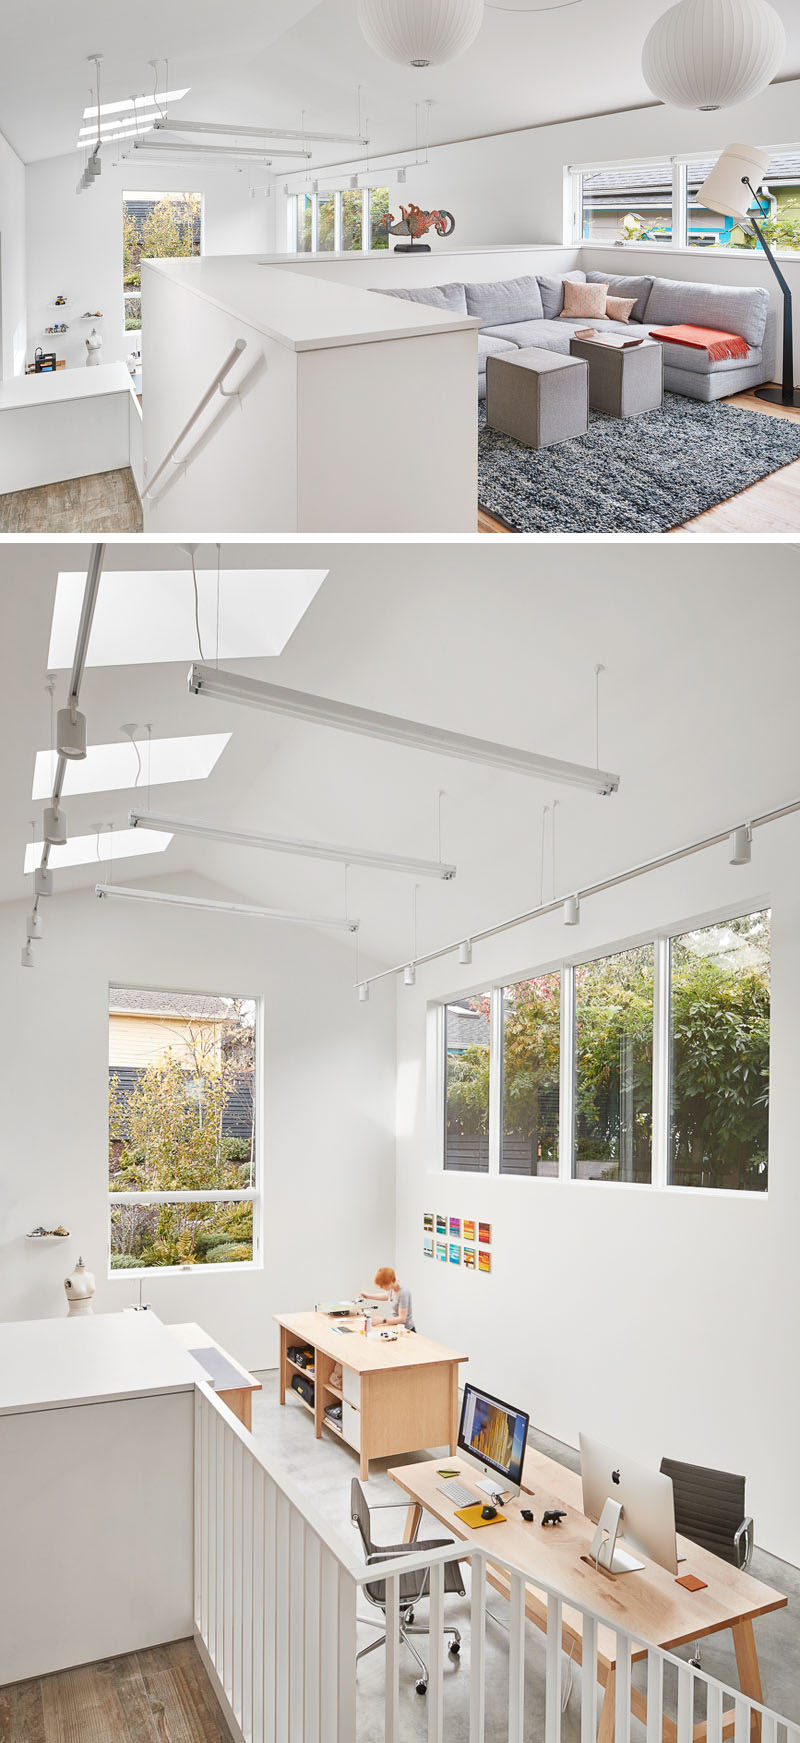 This home has a bright and spacious art studio with cathedral ceilings, that sits half a level below the main floor of the home.